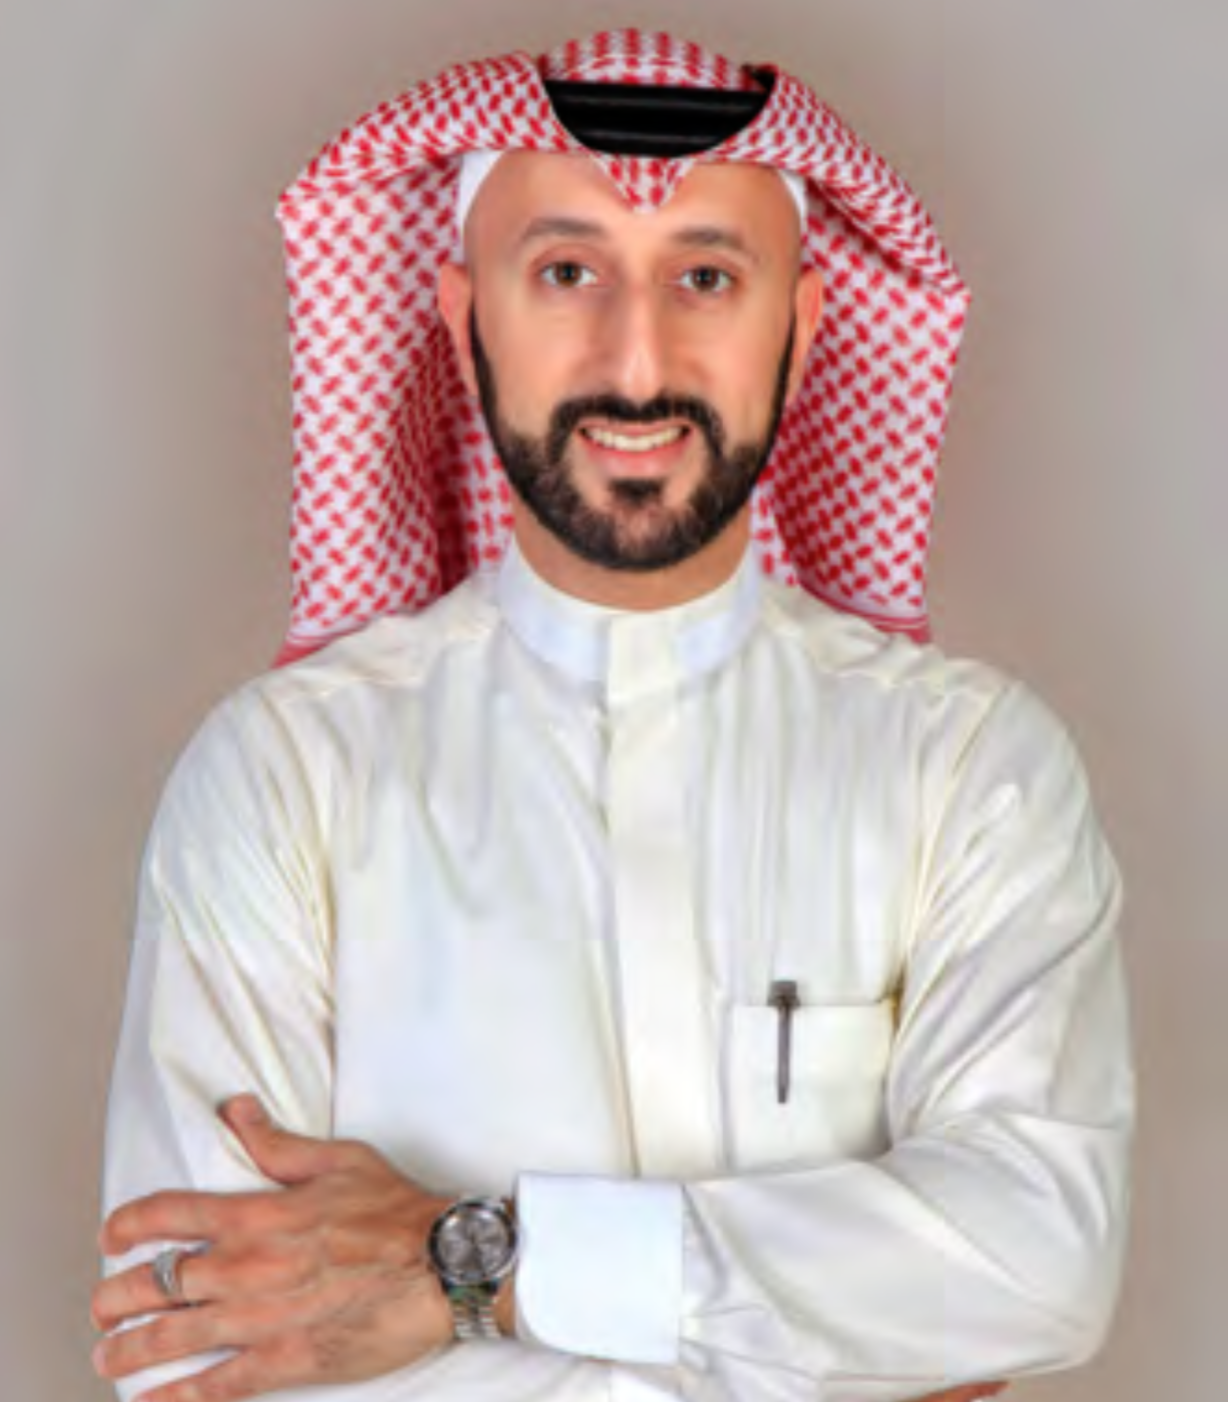 Creative Zone - Why Saudi Arabia Is Being Increasingly Seen As The Place To Be To Start A Business In The Middle East